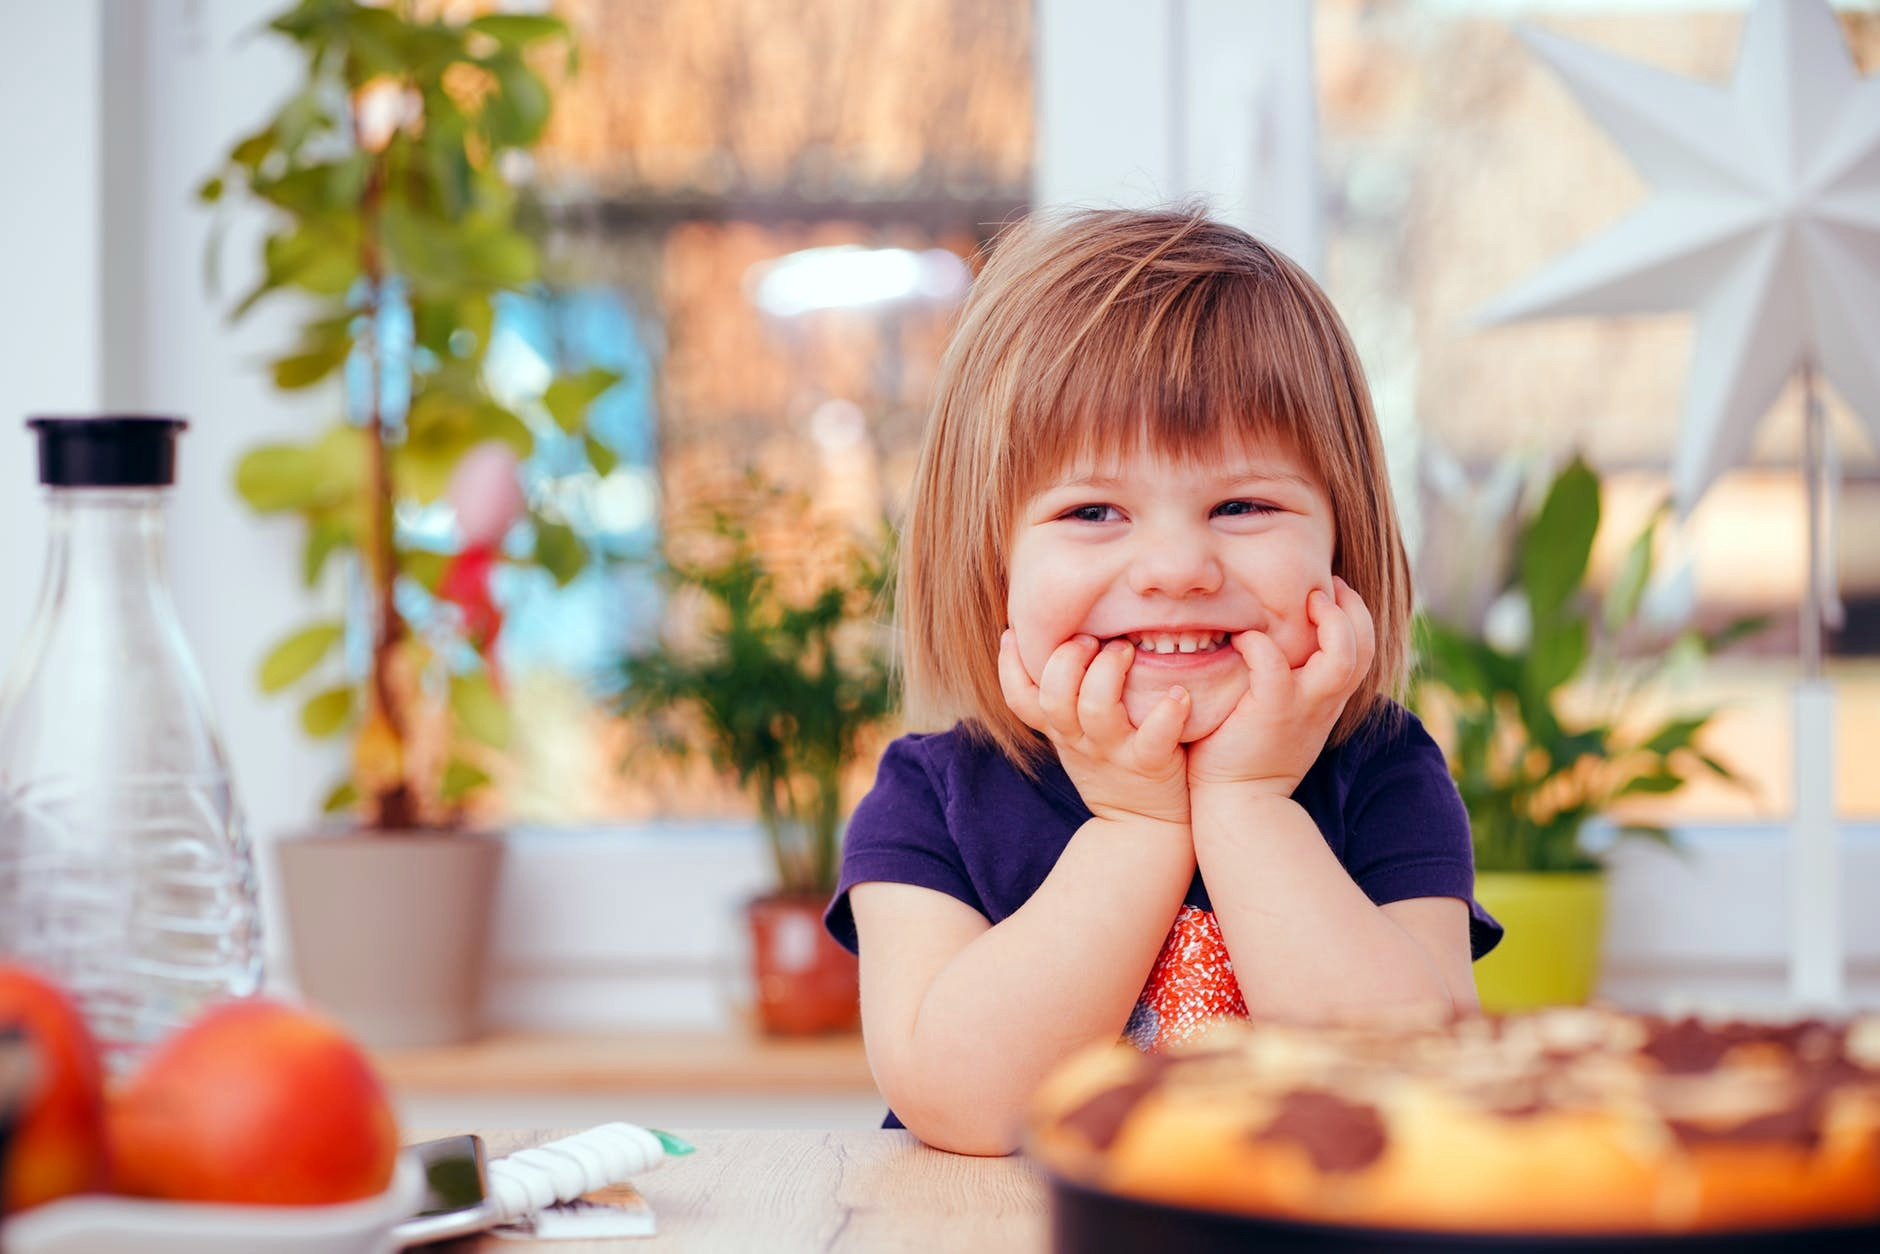 Board games for 3 year olds : 4 fun choices